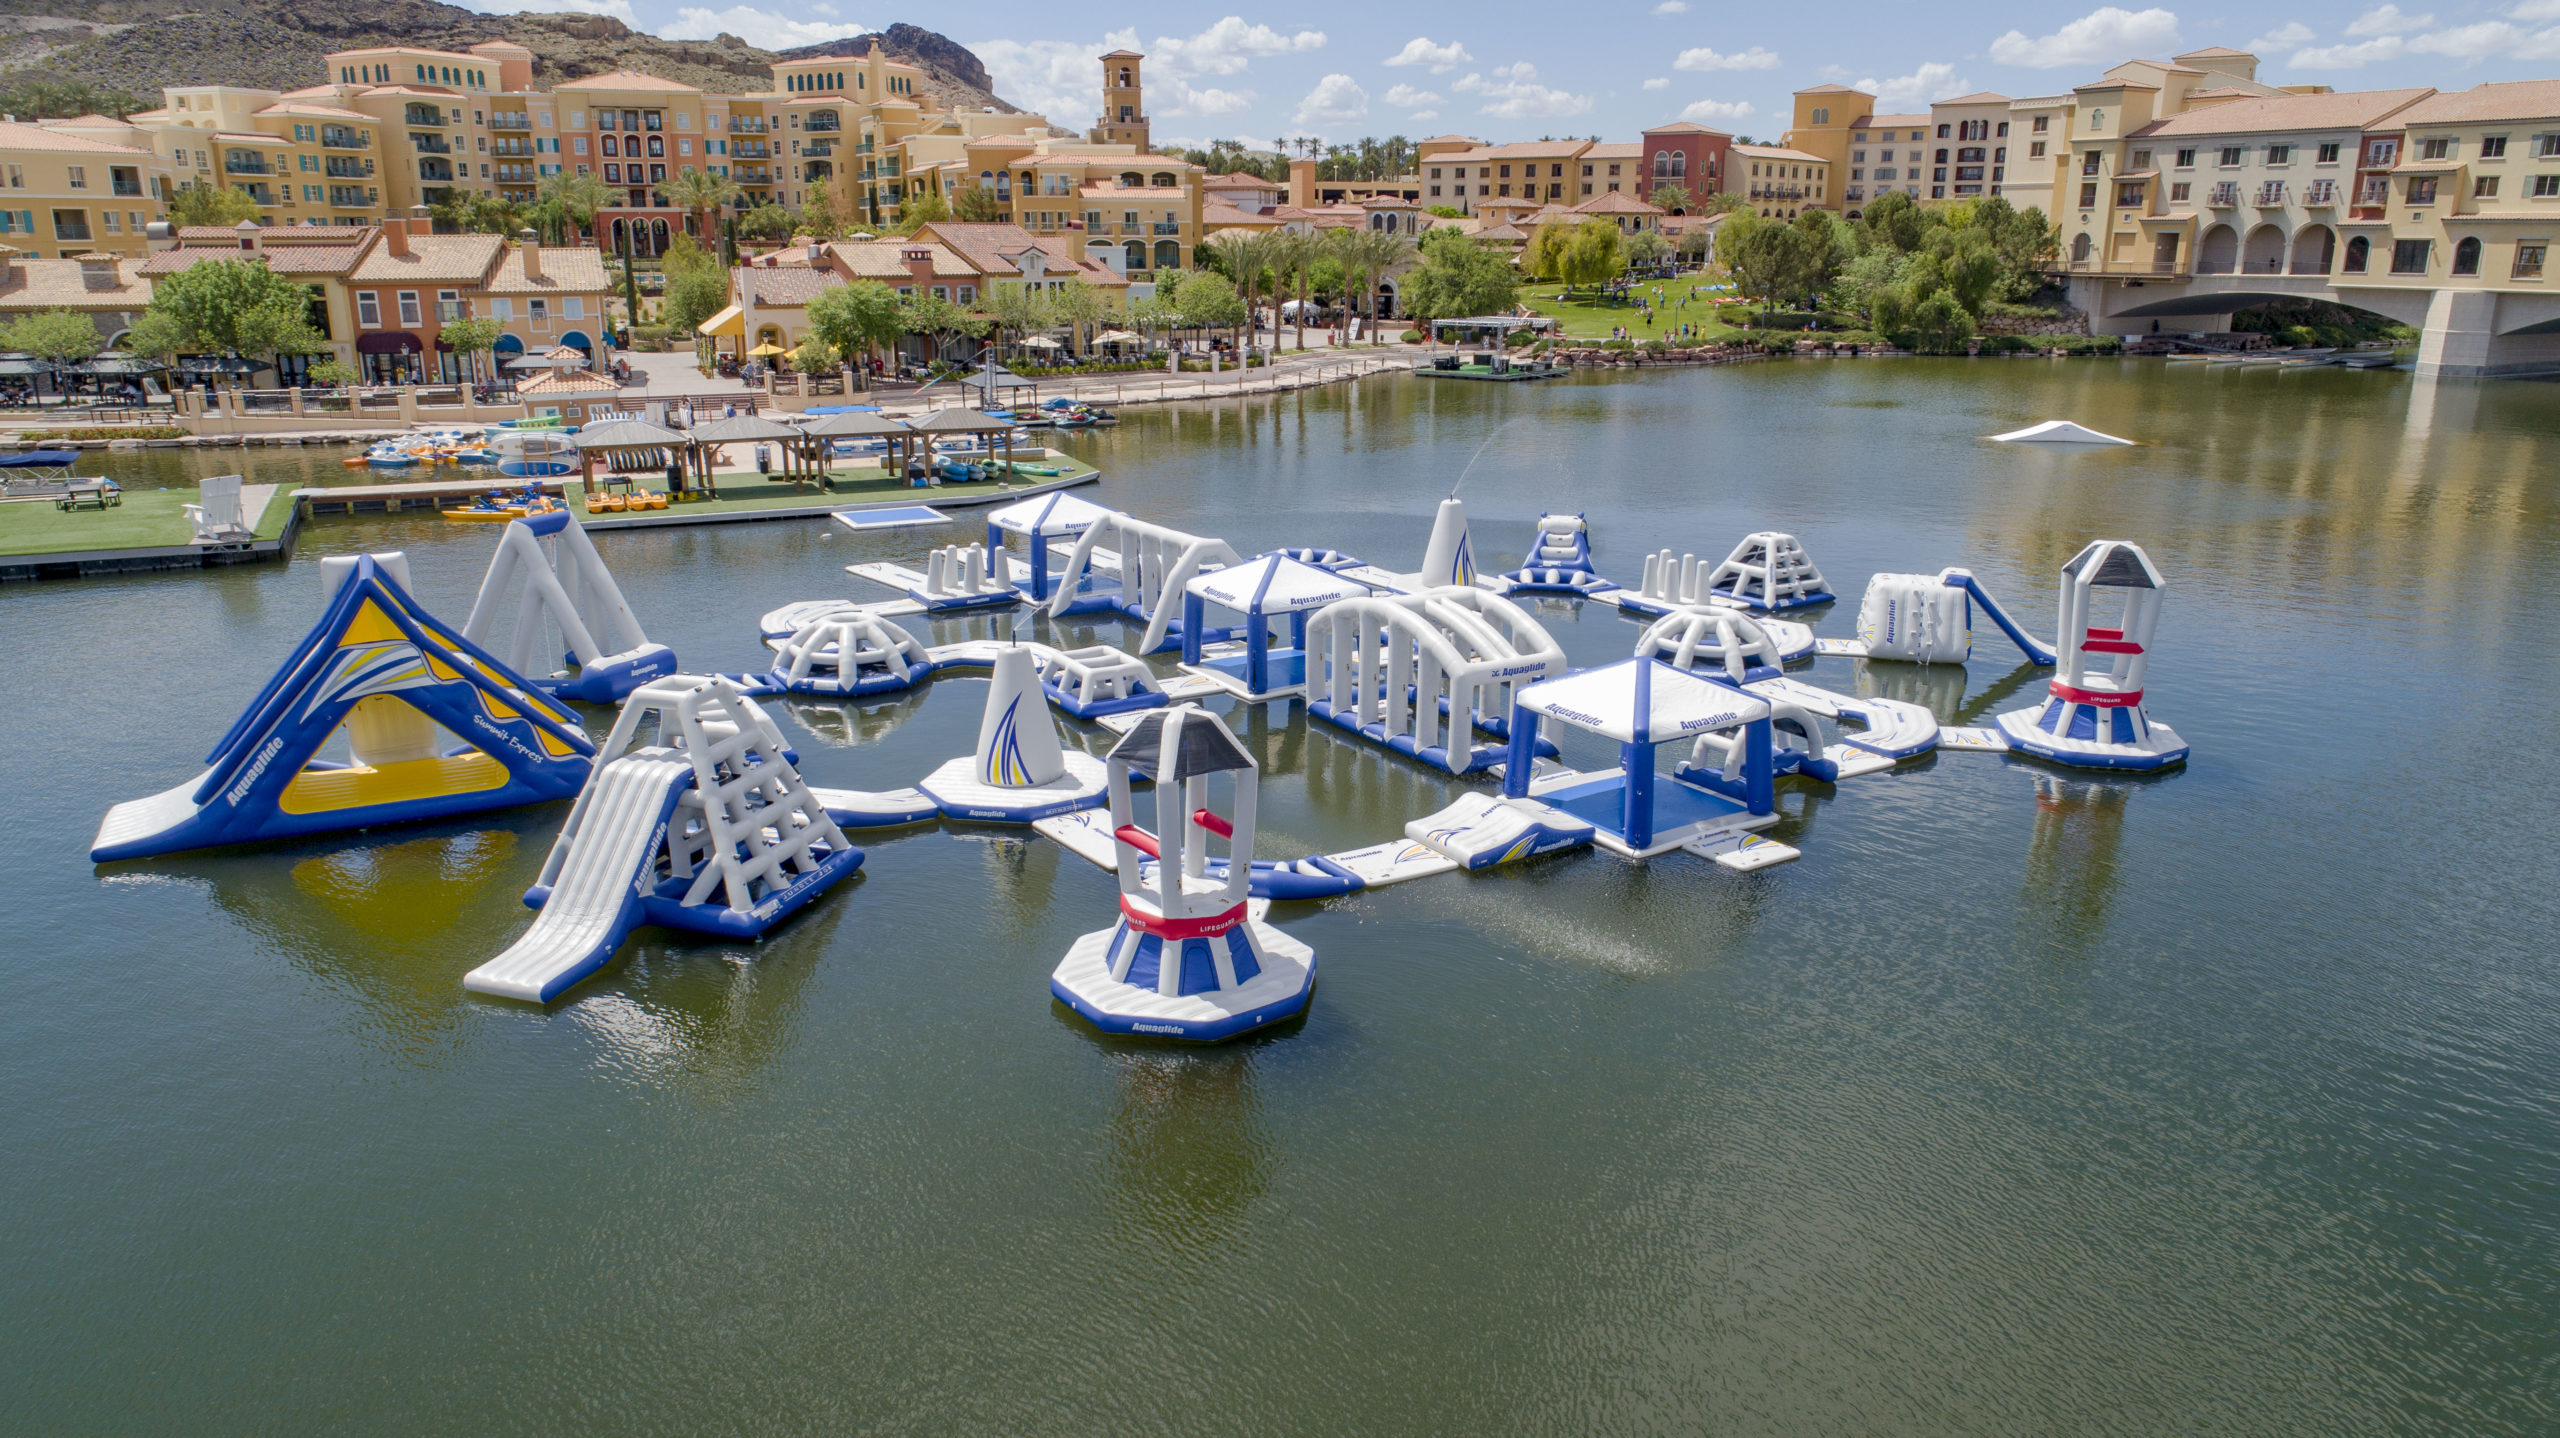 Lake-Las-Vegas-Aquapark-7-scaled